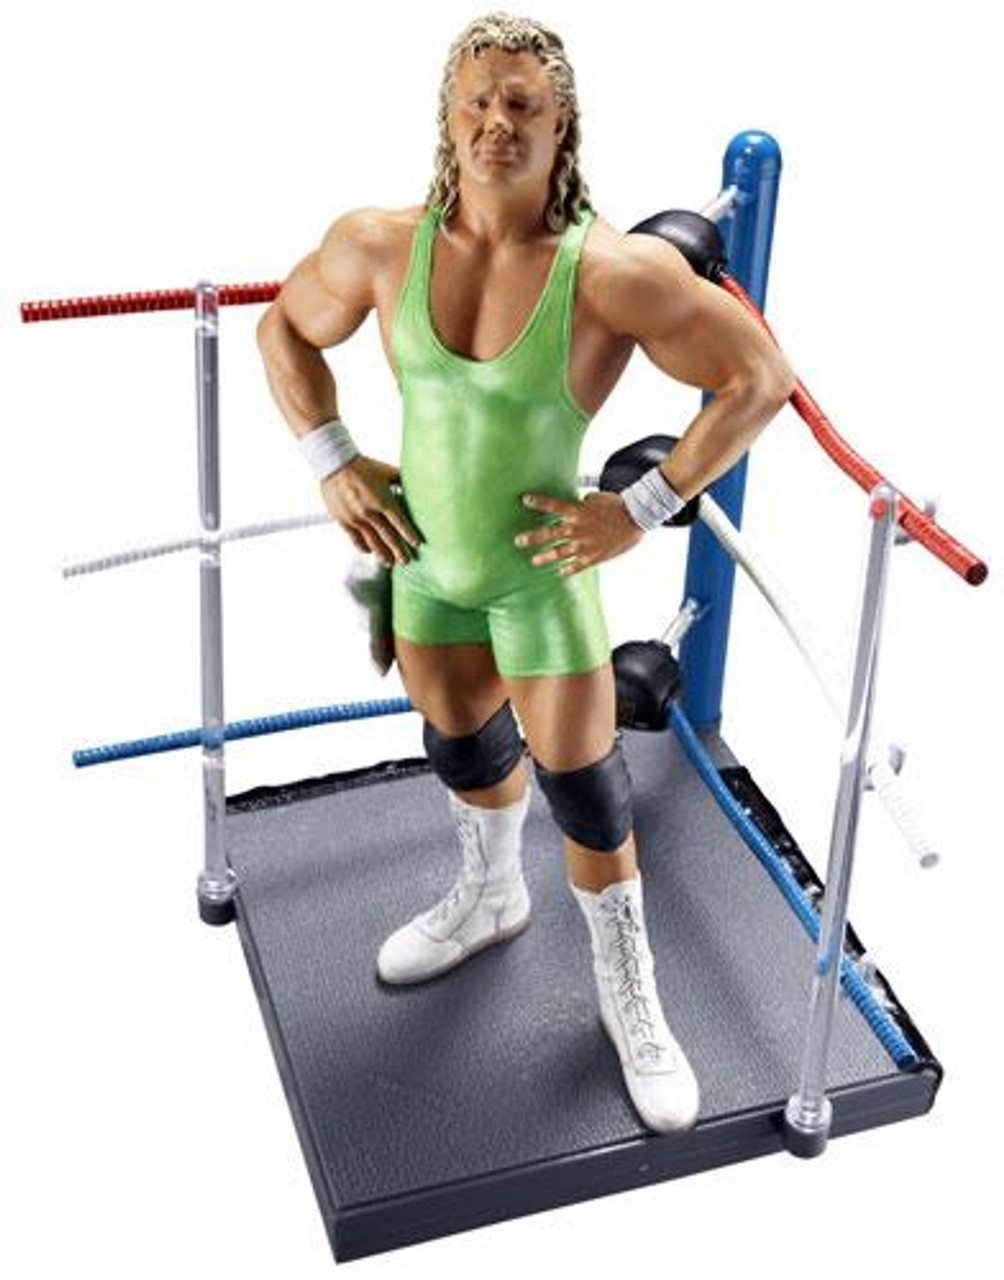 WWE Wrestling Unmatched Fury Series 4 Mr. Perfect Action Figure